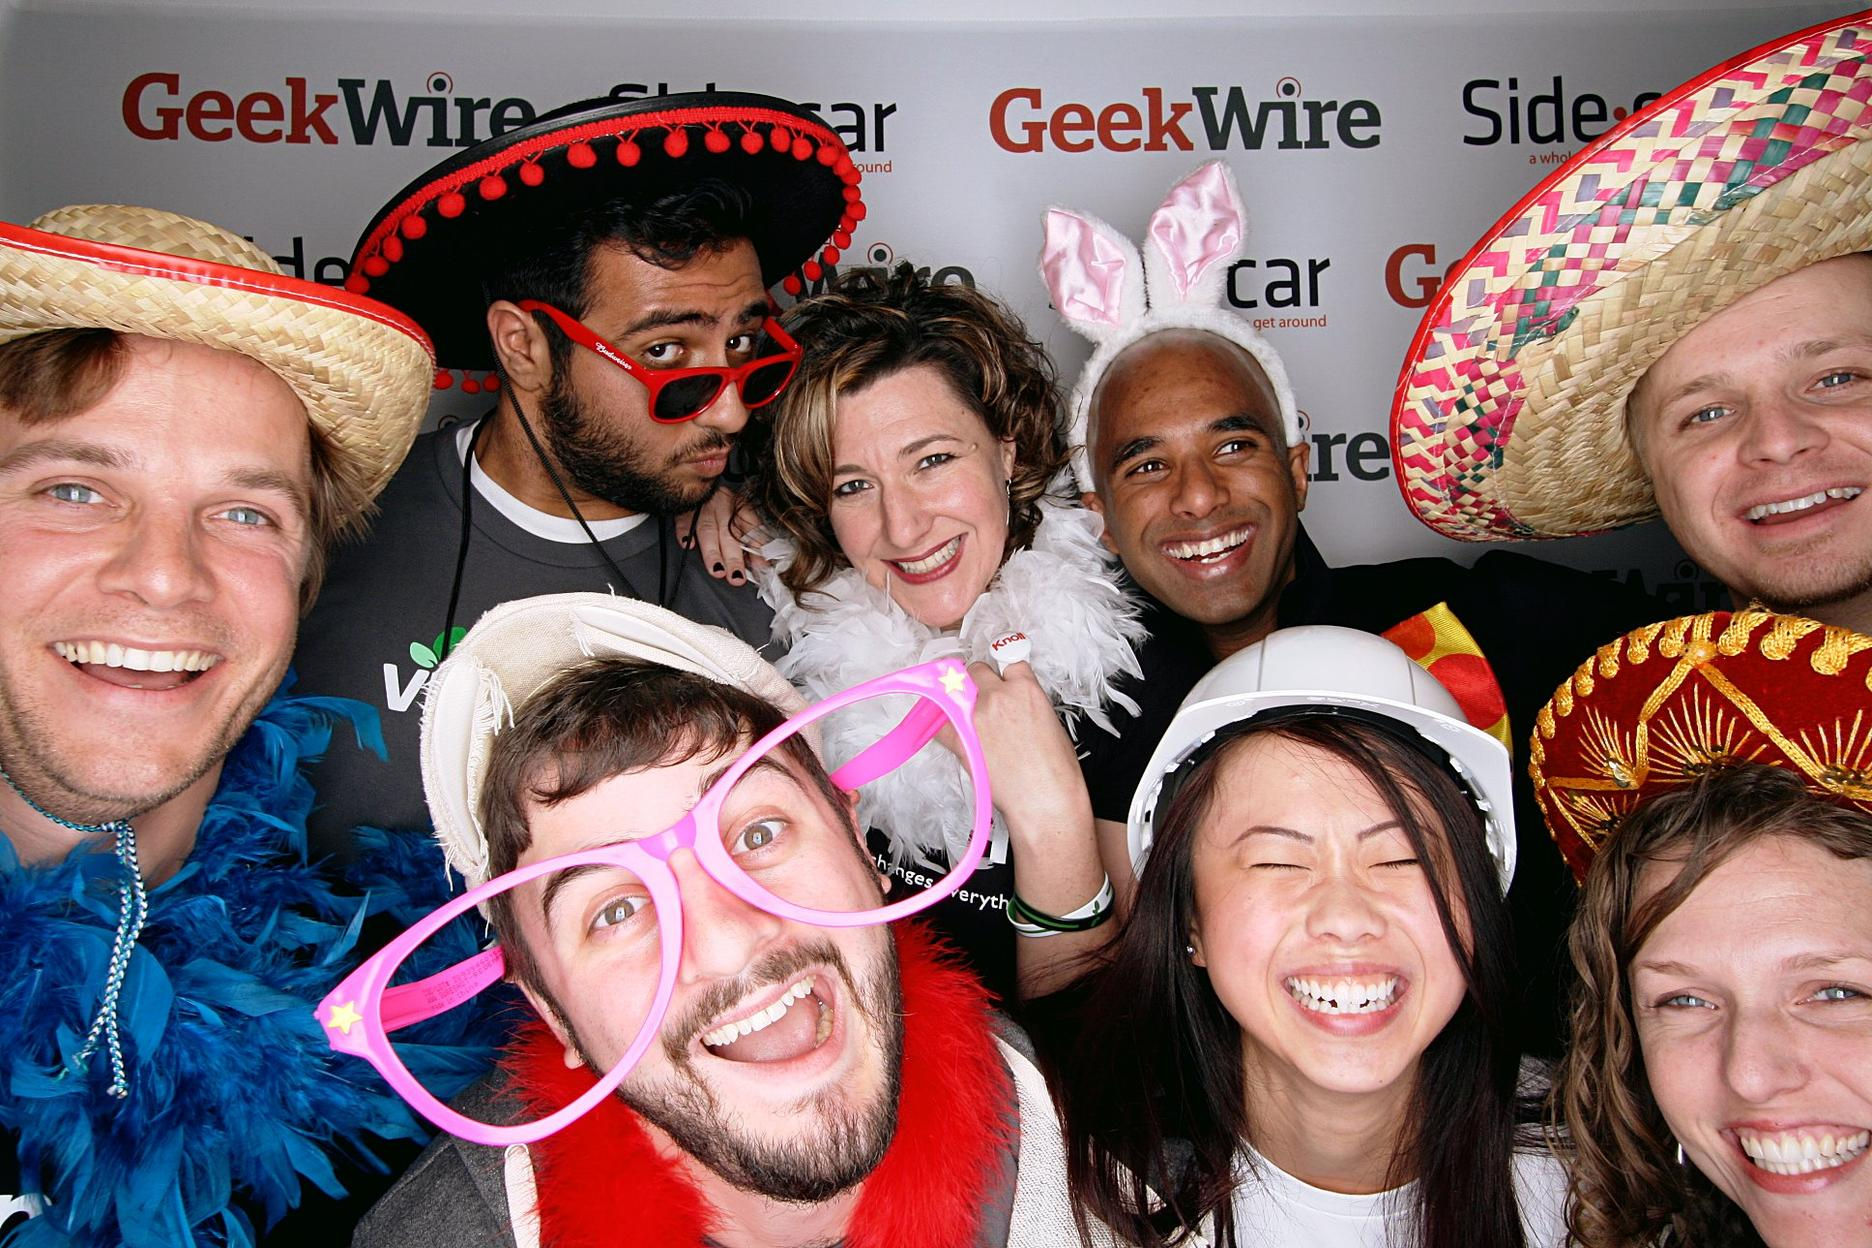 Team Vittana rolling deep at last night's GeekWire bash